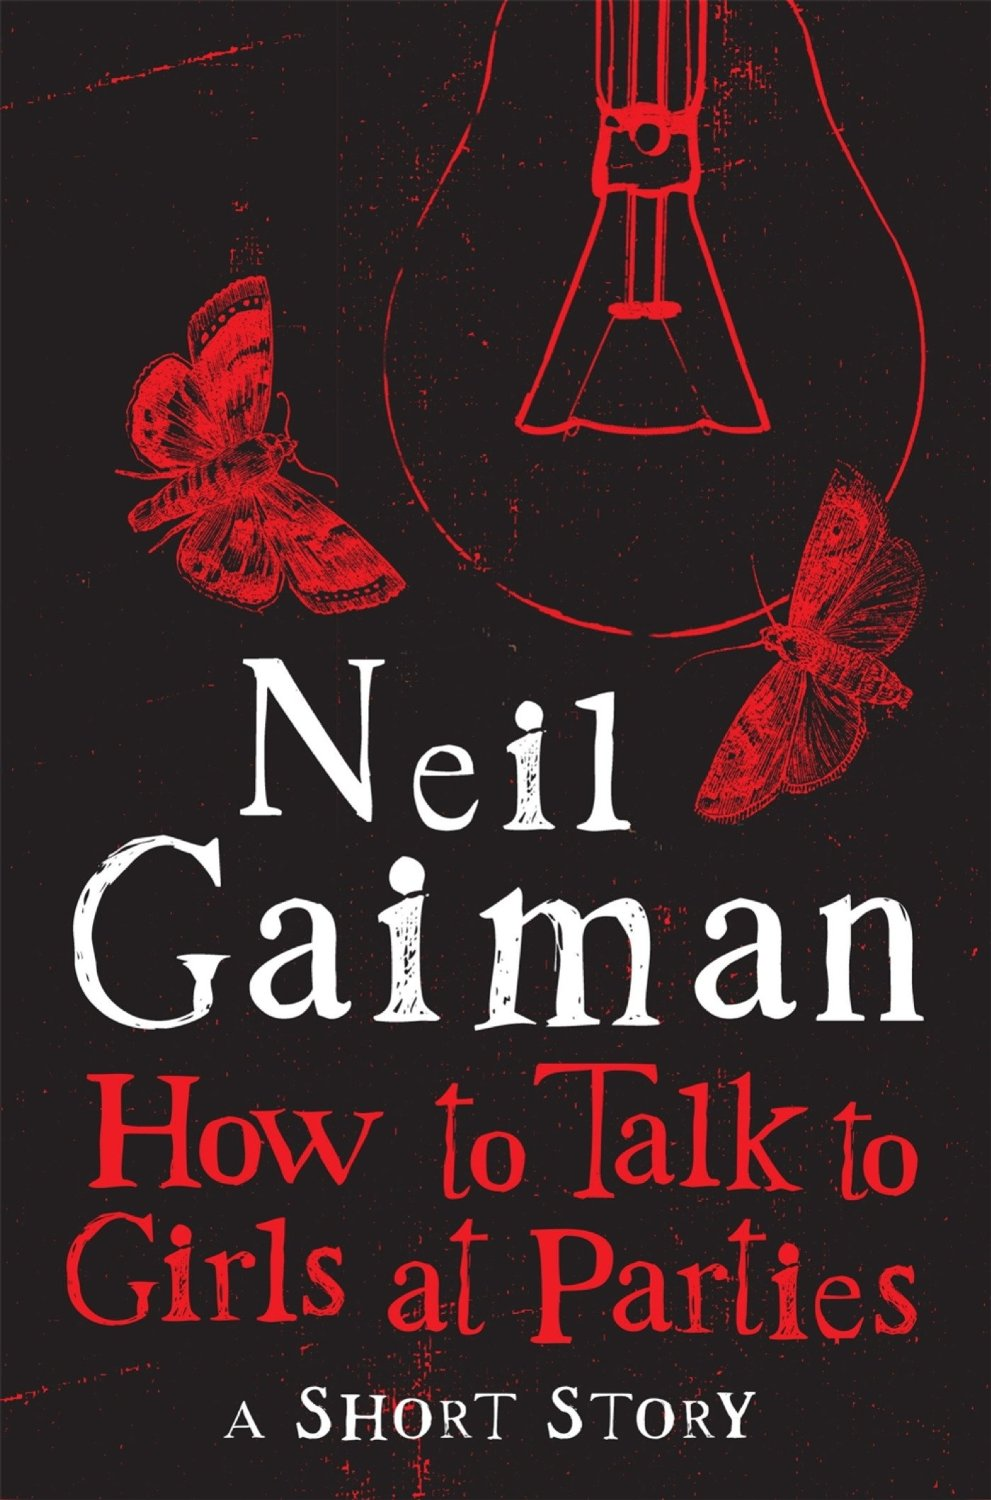 How-to-Talk-to-Girls-at-Parties-by-Neil-Gaiman